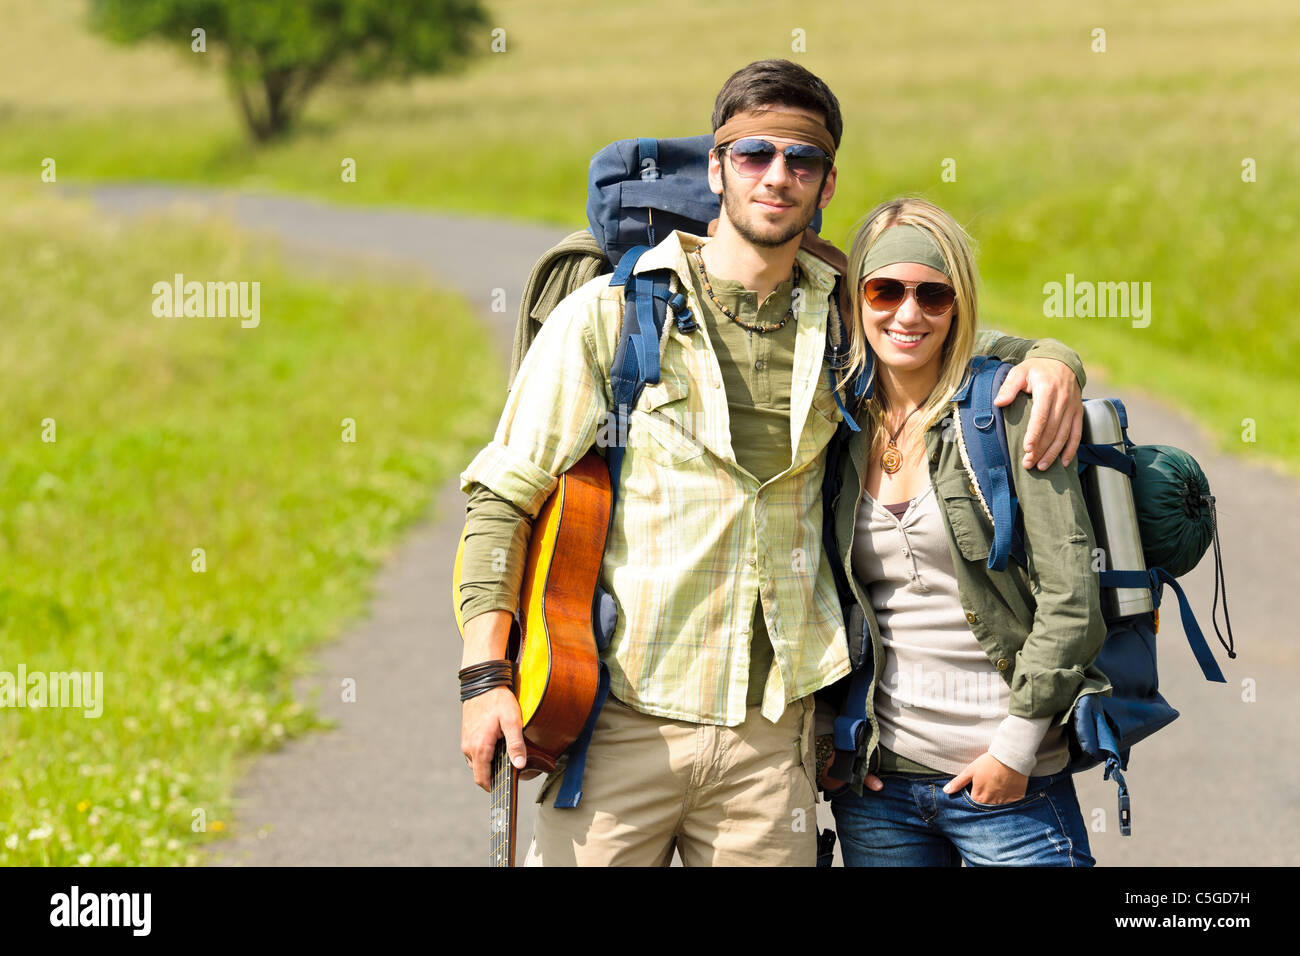 Hiking young couple backpack tramping on asphalt road sunny countryside - Stock Image